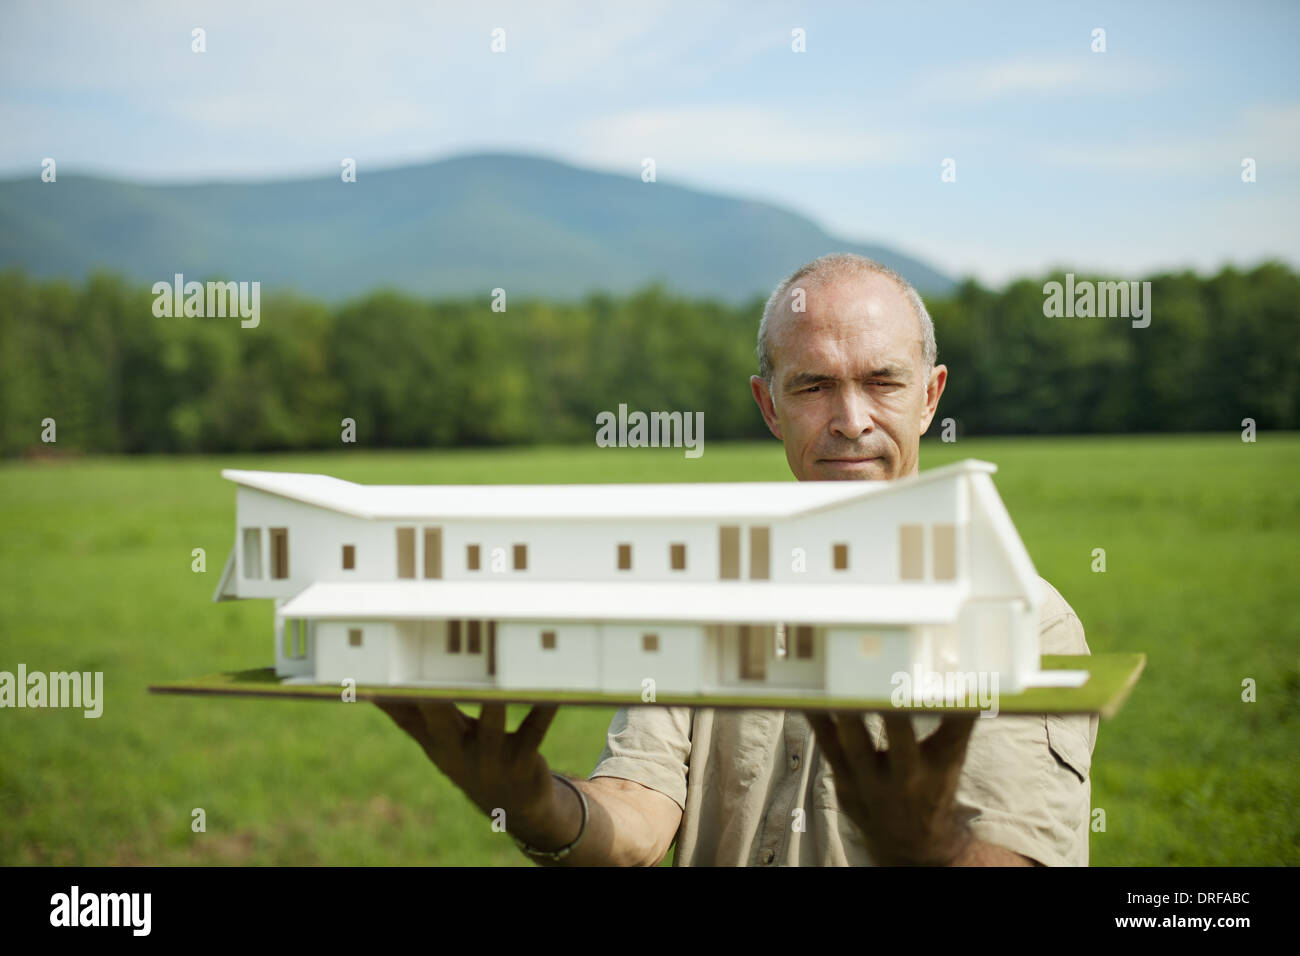 New York state USA person holding scale model new building - Stock Image